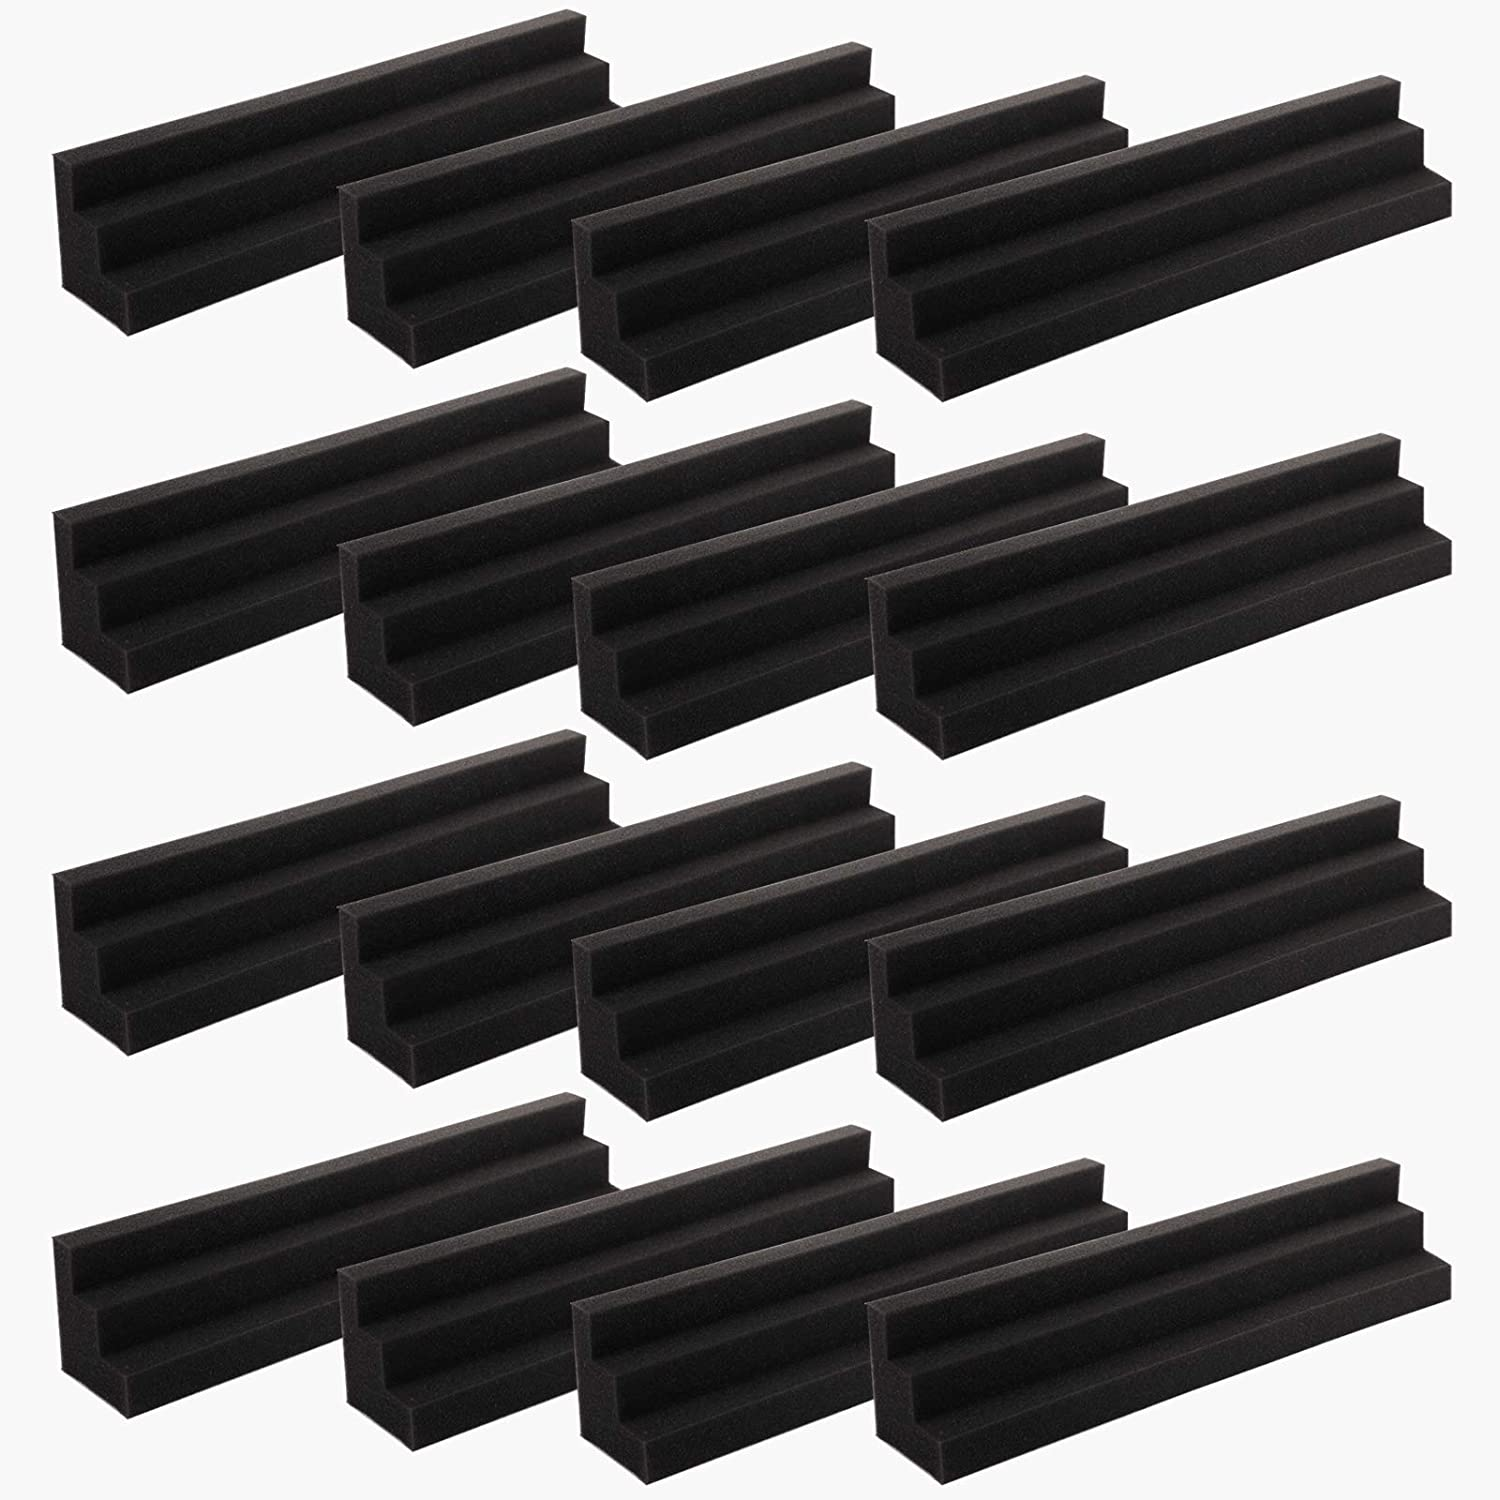 Bekith 12 Pack Column Acoustic Panels Bass Traps Corner Studio Foam, Soundproof Padding Wall Panels Corner Block Finish for Studios or Home Theater, Black